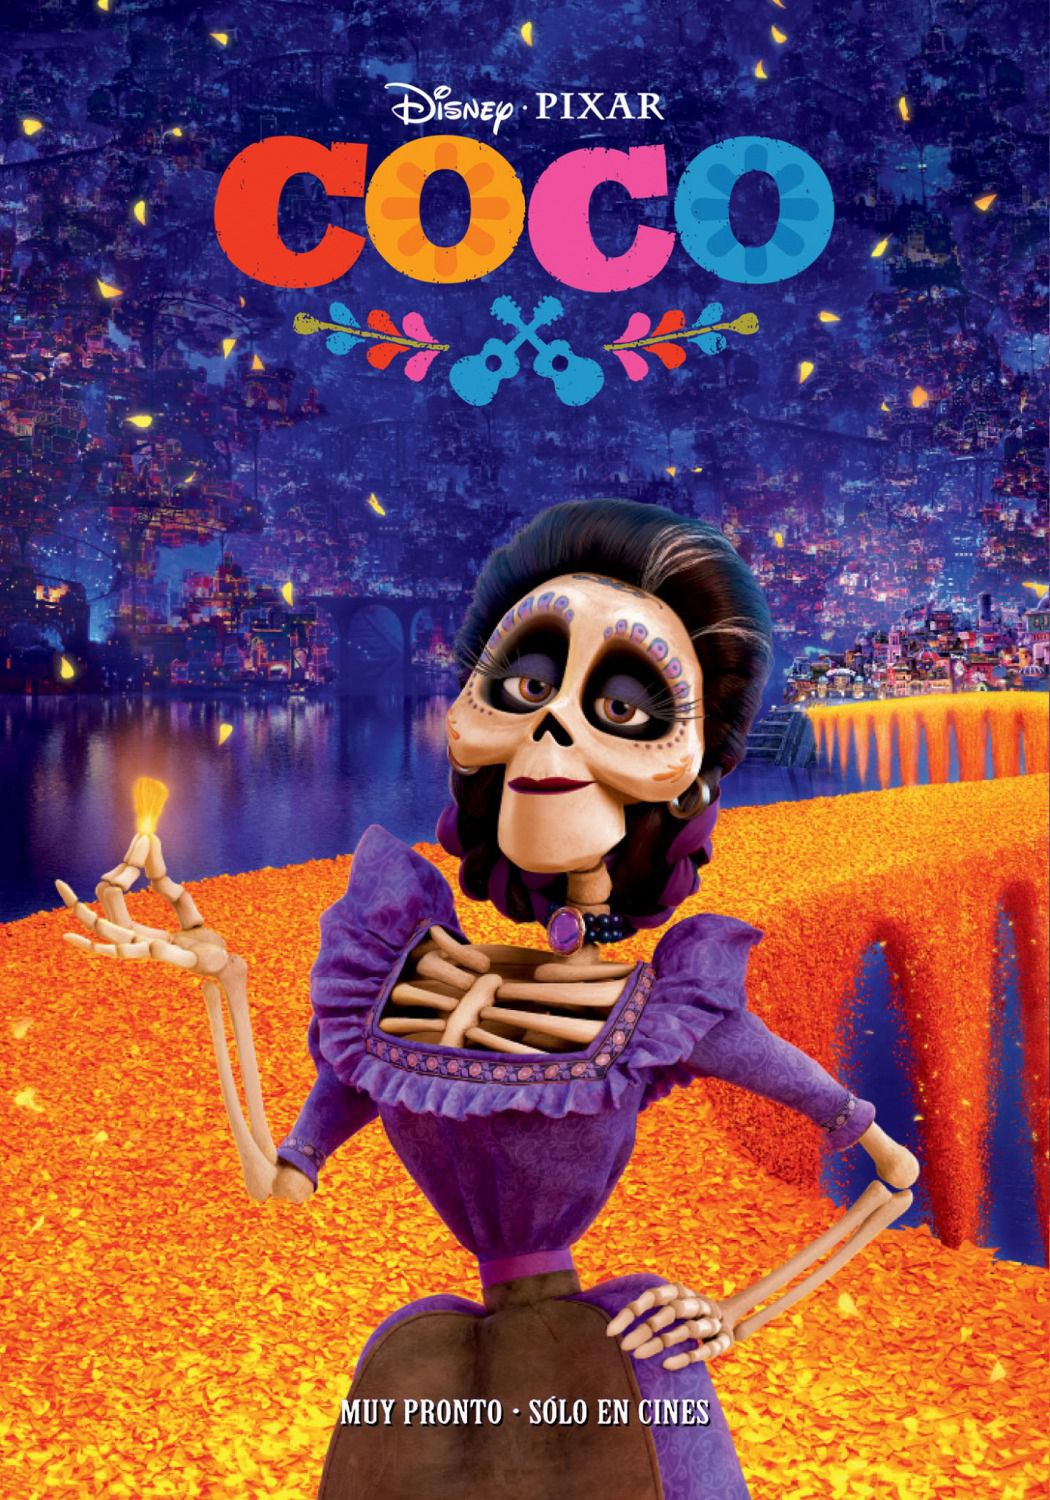 Coco -  Disney Pixar animated film poster